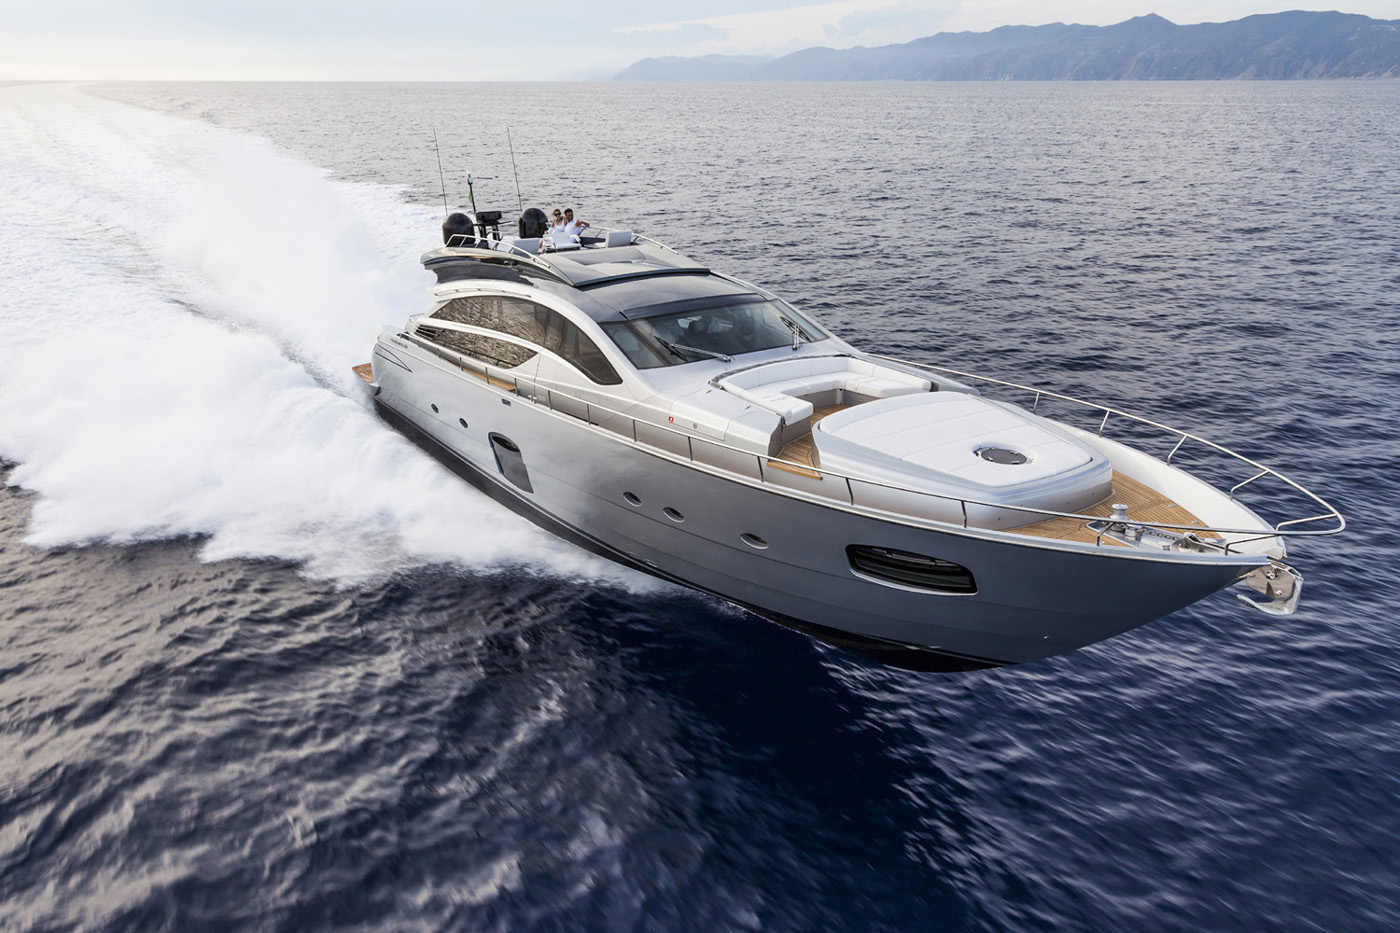 Superyacht Pershing 82 Front View Yacht Charter